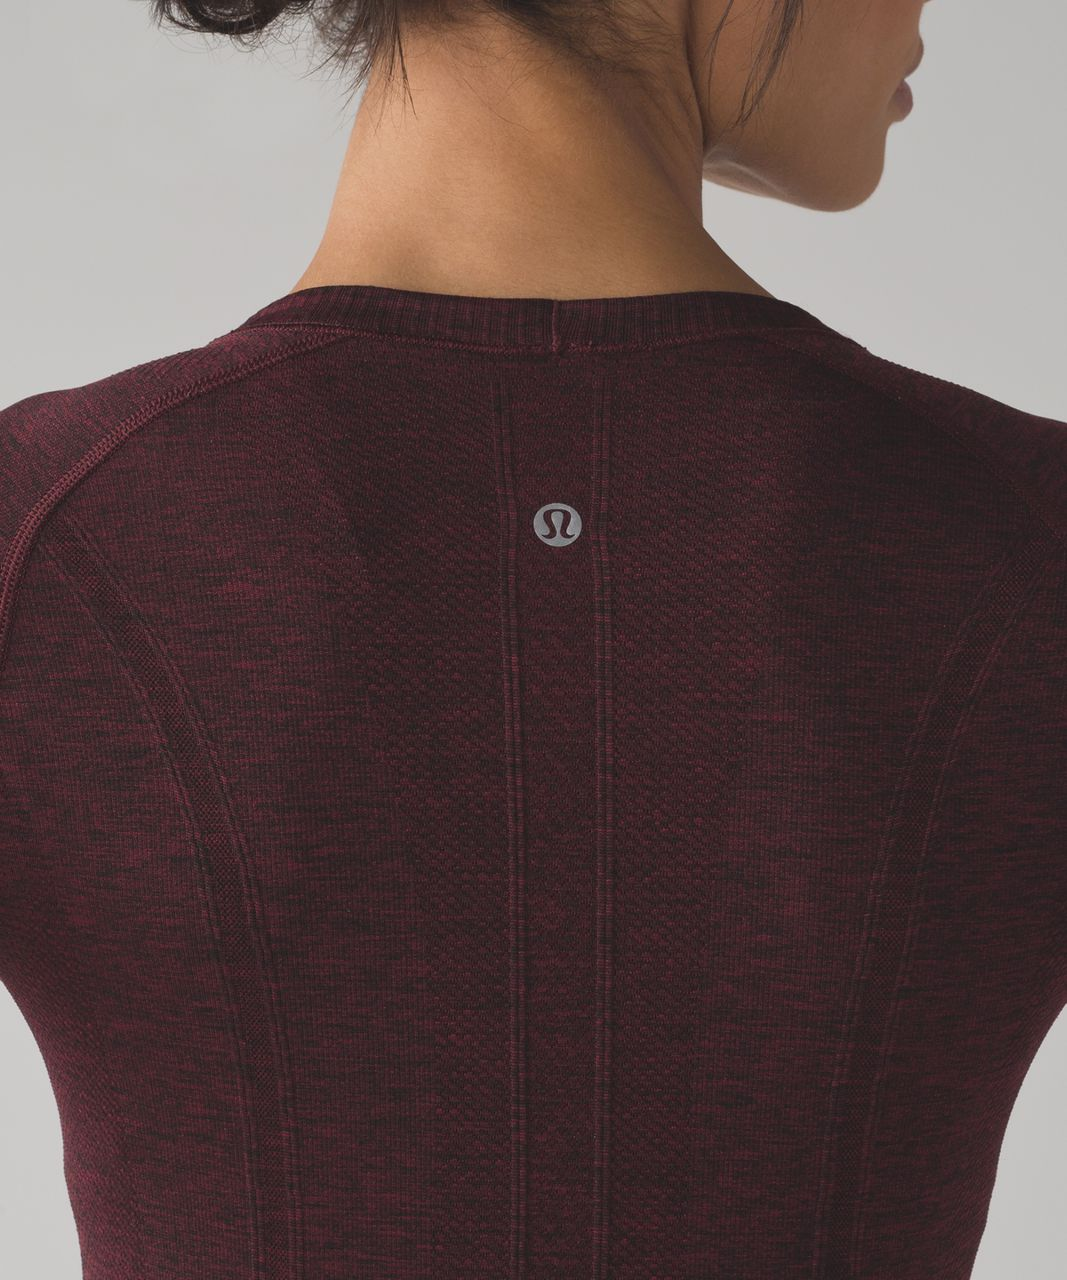 Lululemon Swiftly Tech Long Sleeve Crew - Deep Rouge / Black